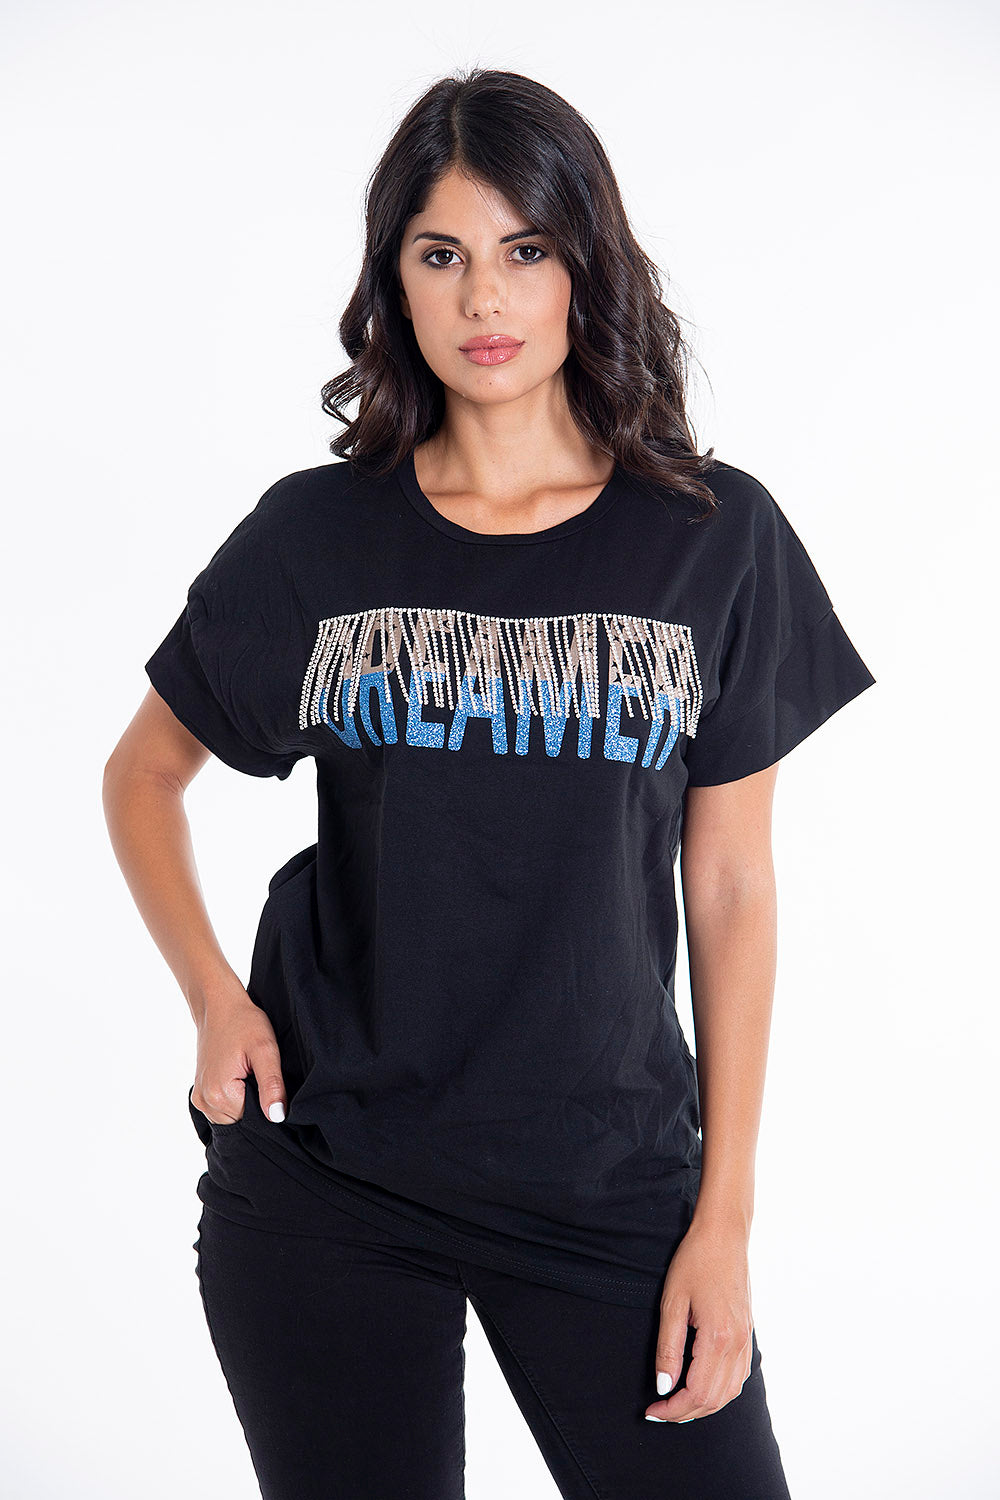 Hellen Batterr crystal fringes t-shirt with glitter text